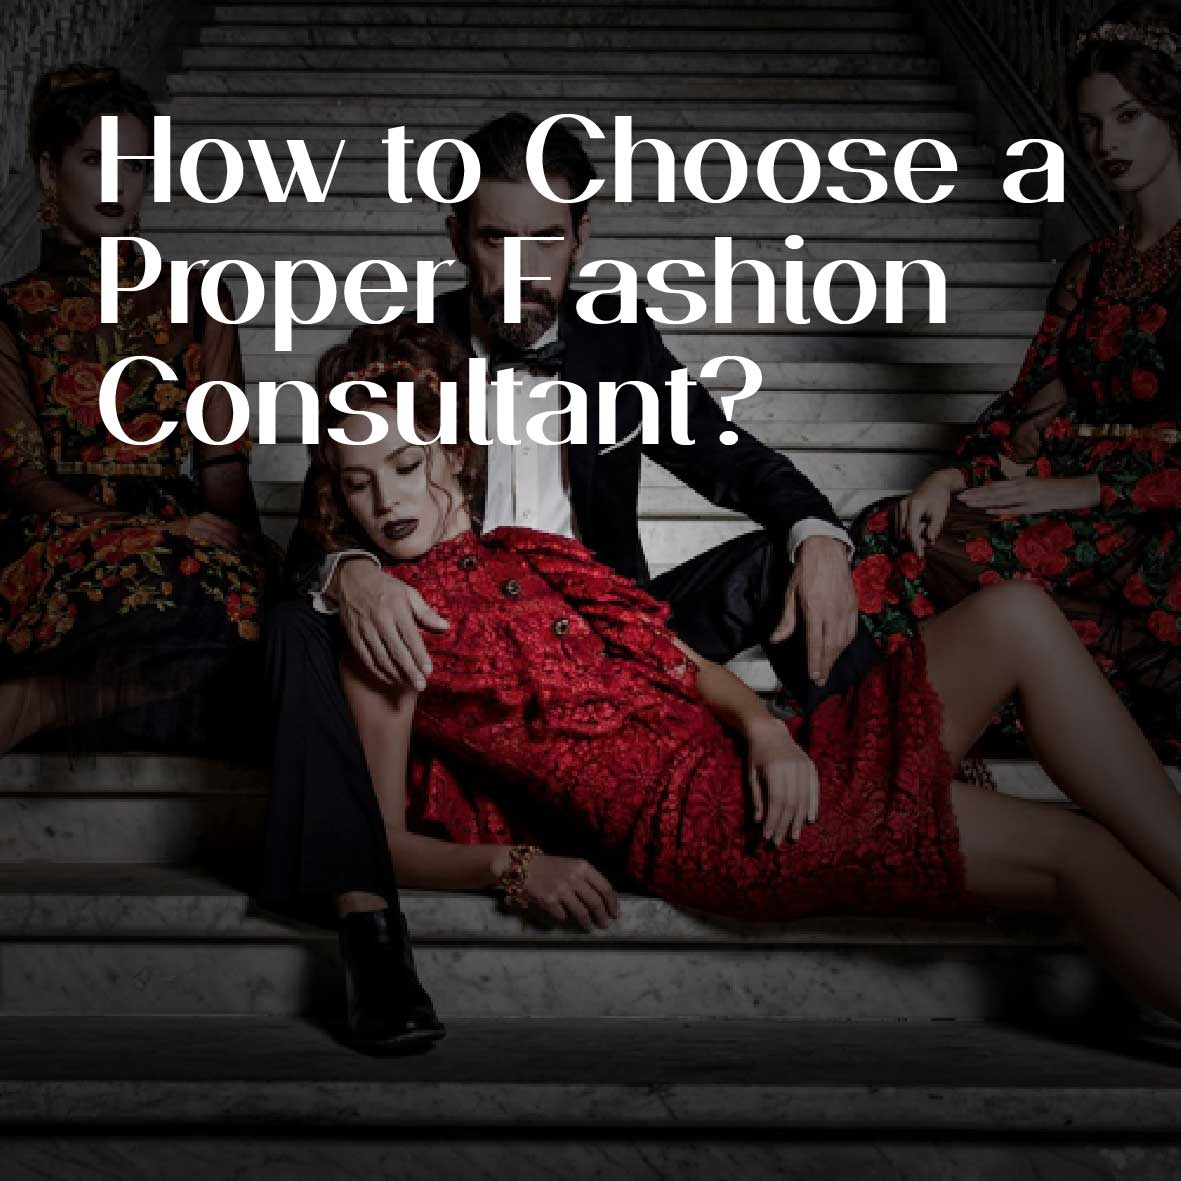 How to choose a proper fashion consultant